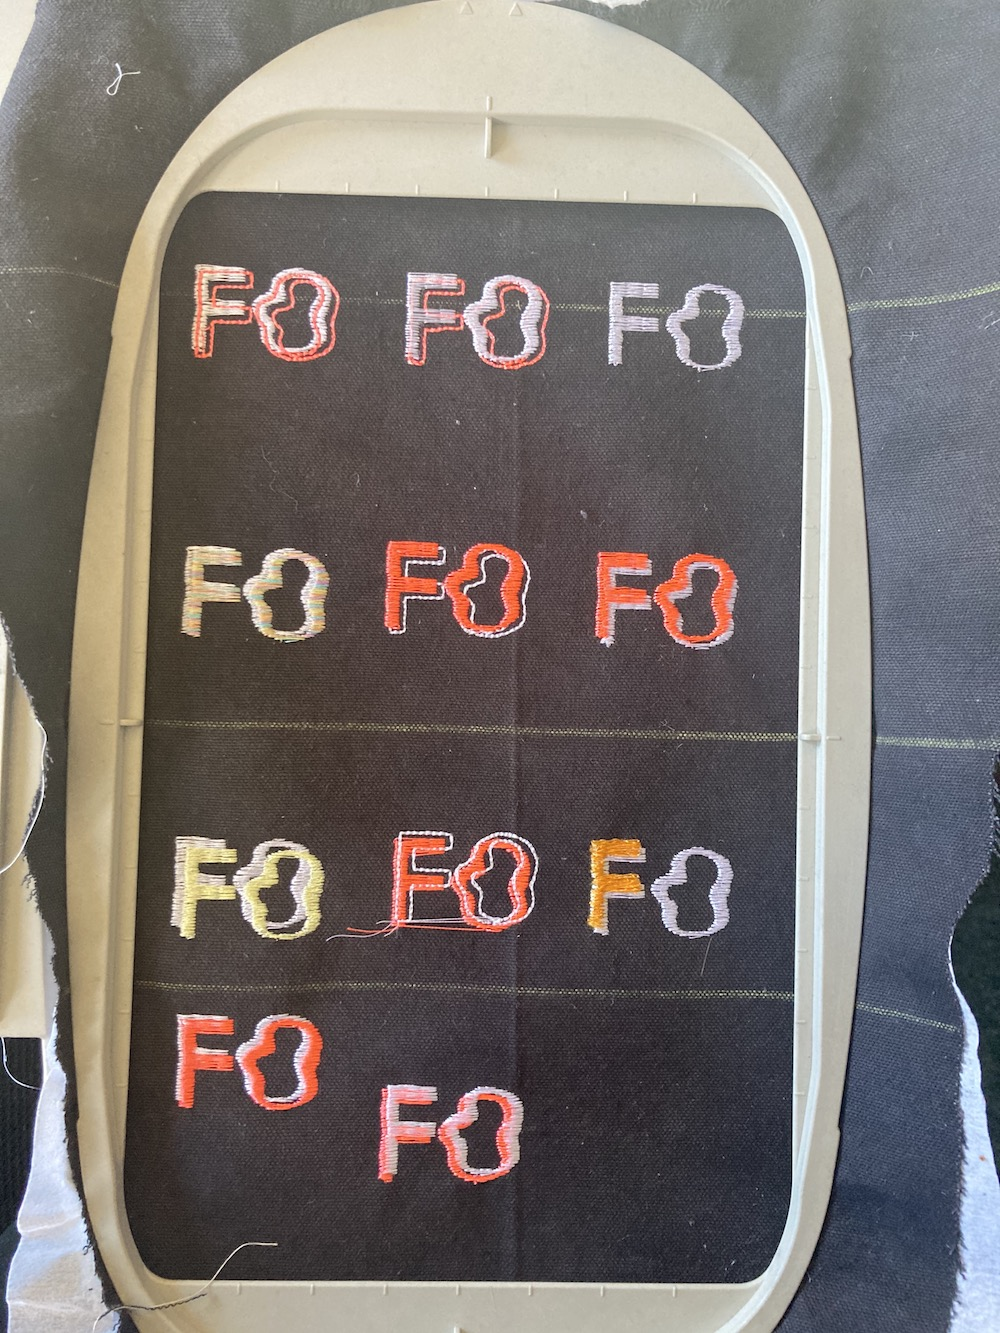 a number of different embroidered logos of the initials F.O.